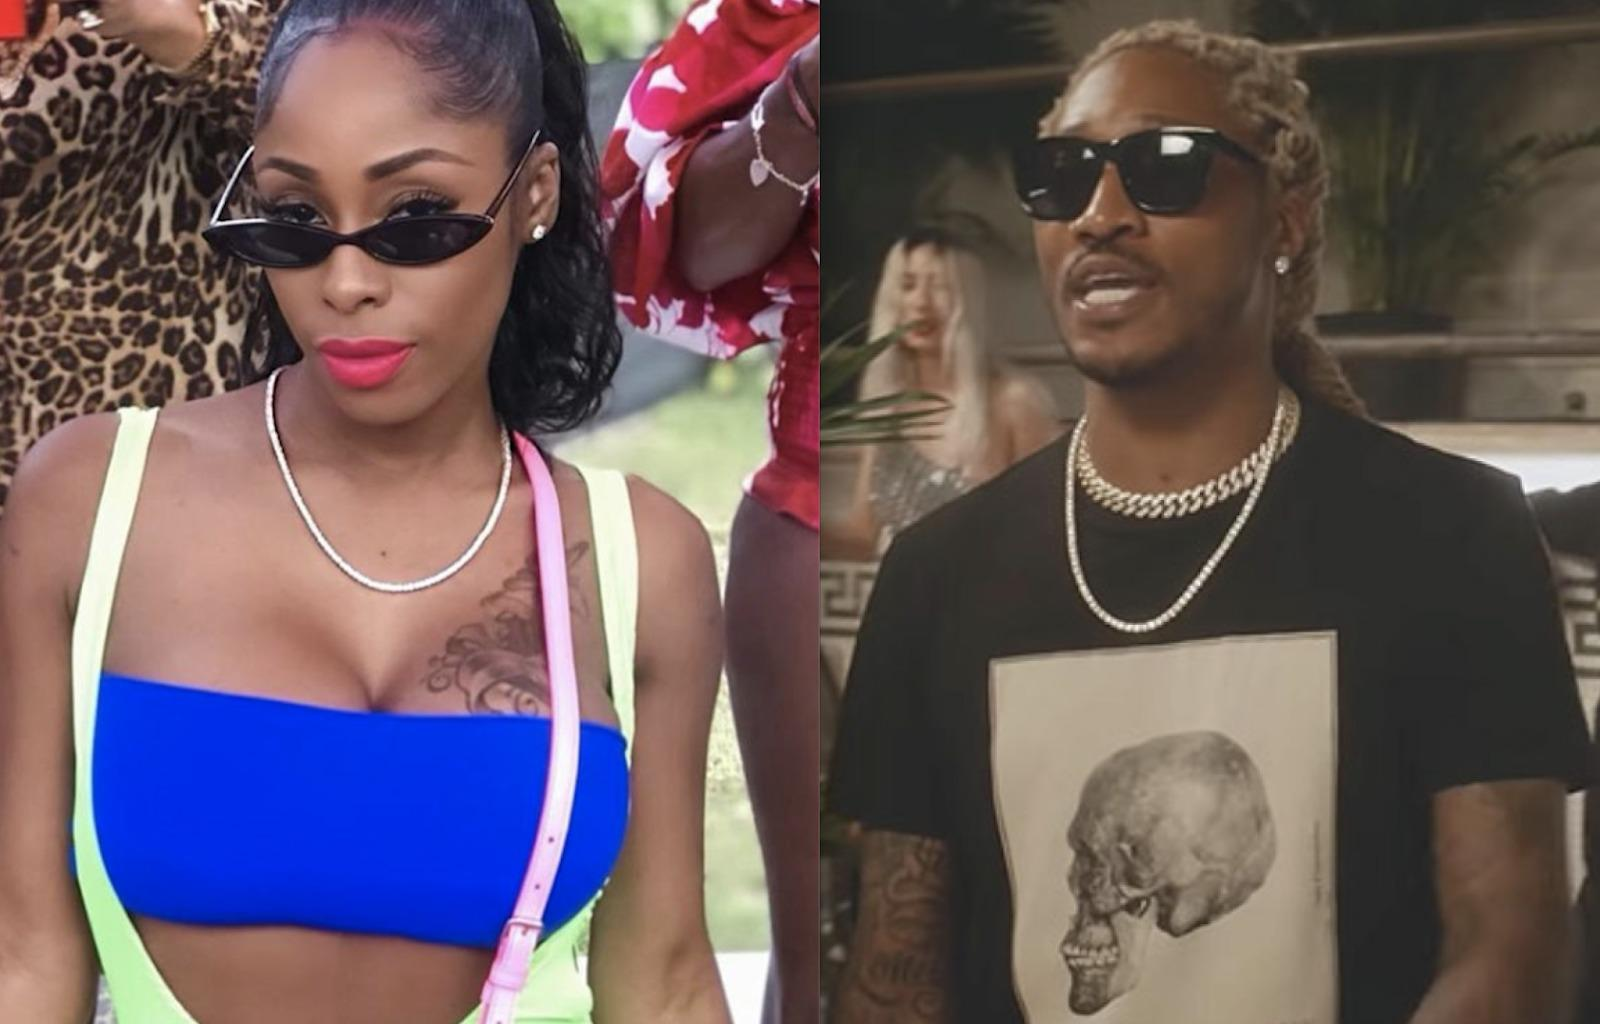 Future Sues His Alleged Baby Mama, Eliza Reign - Here Are All The Details